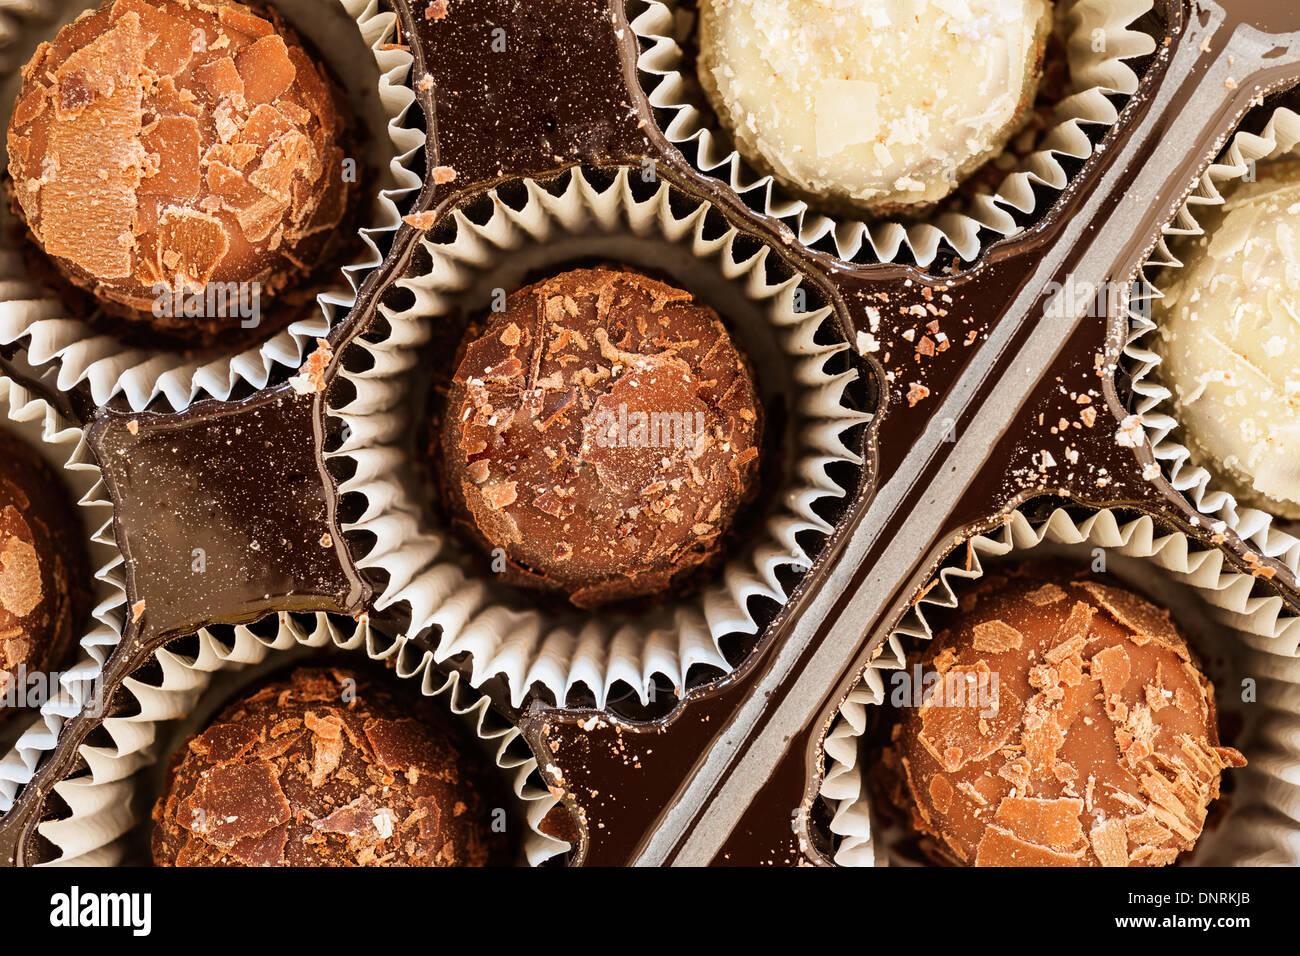 A selection of Guylian Belgian chocolate truffles - Stock Image